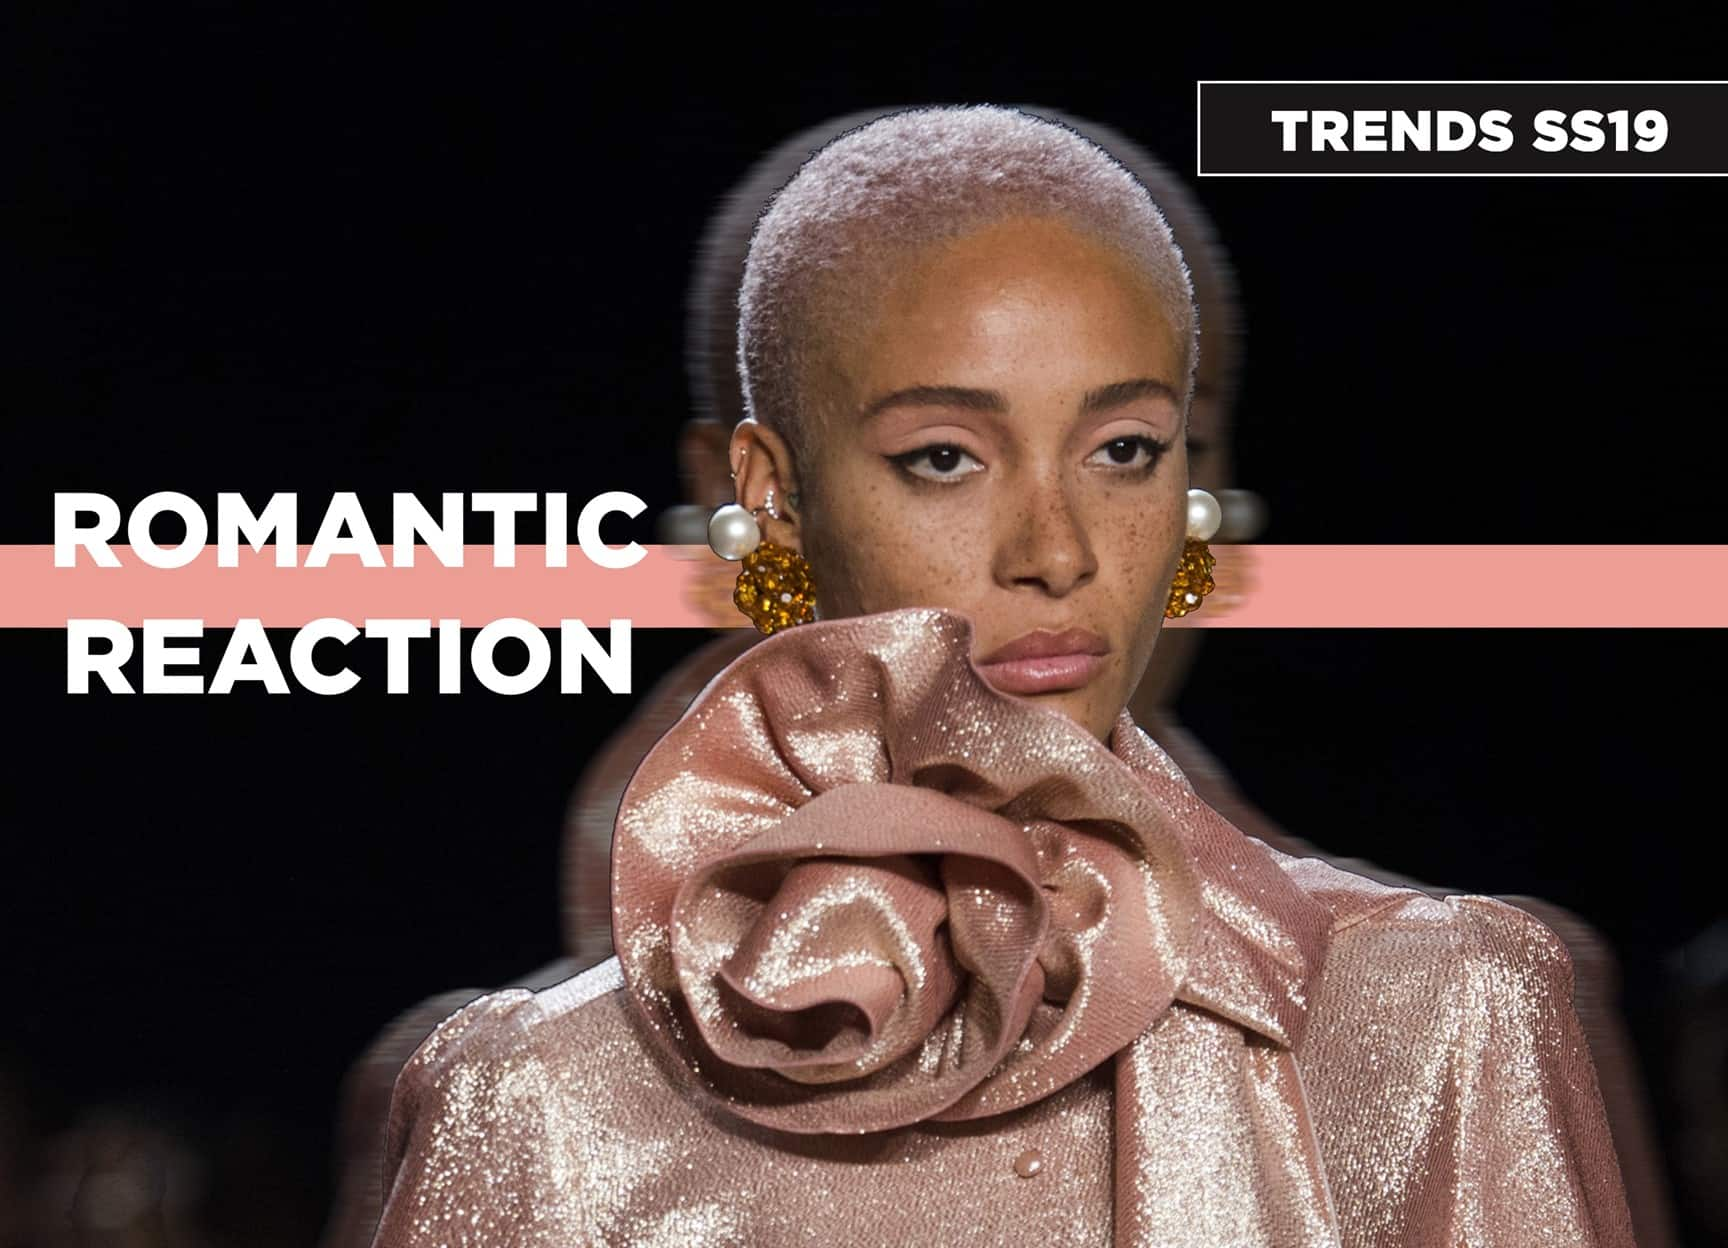 SS19 trends Romantic Reaction